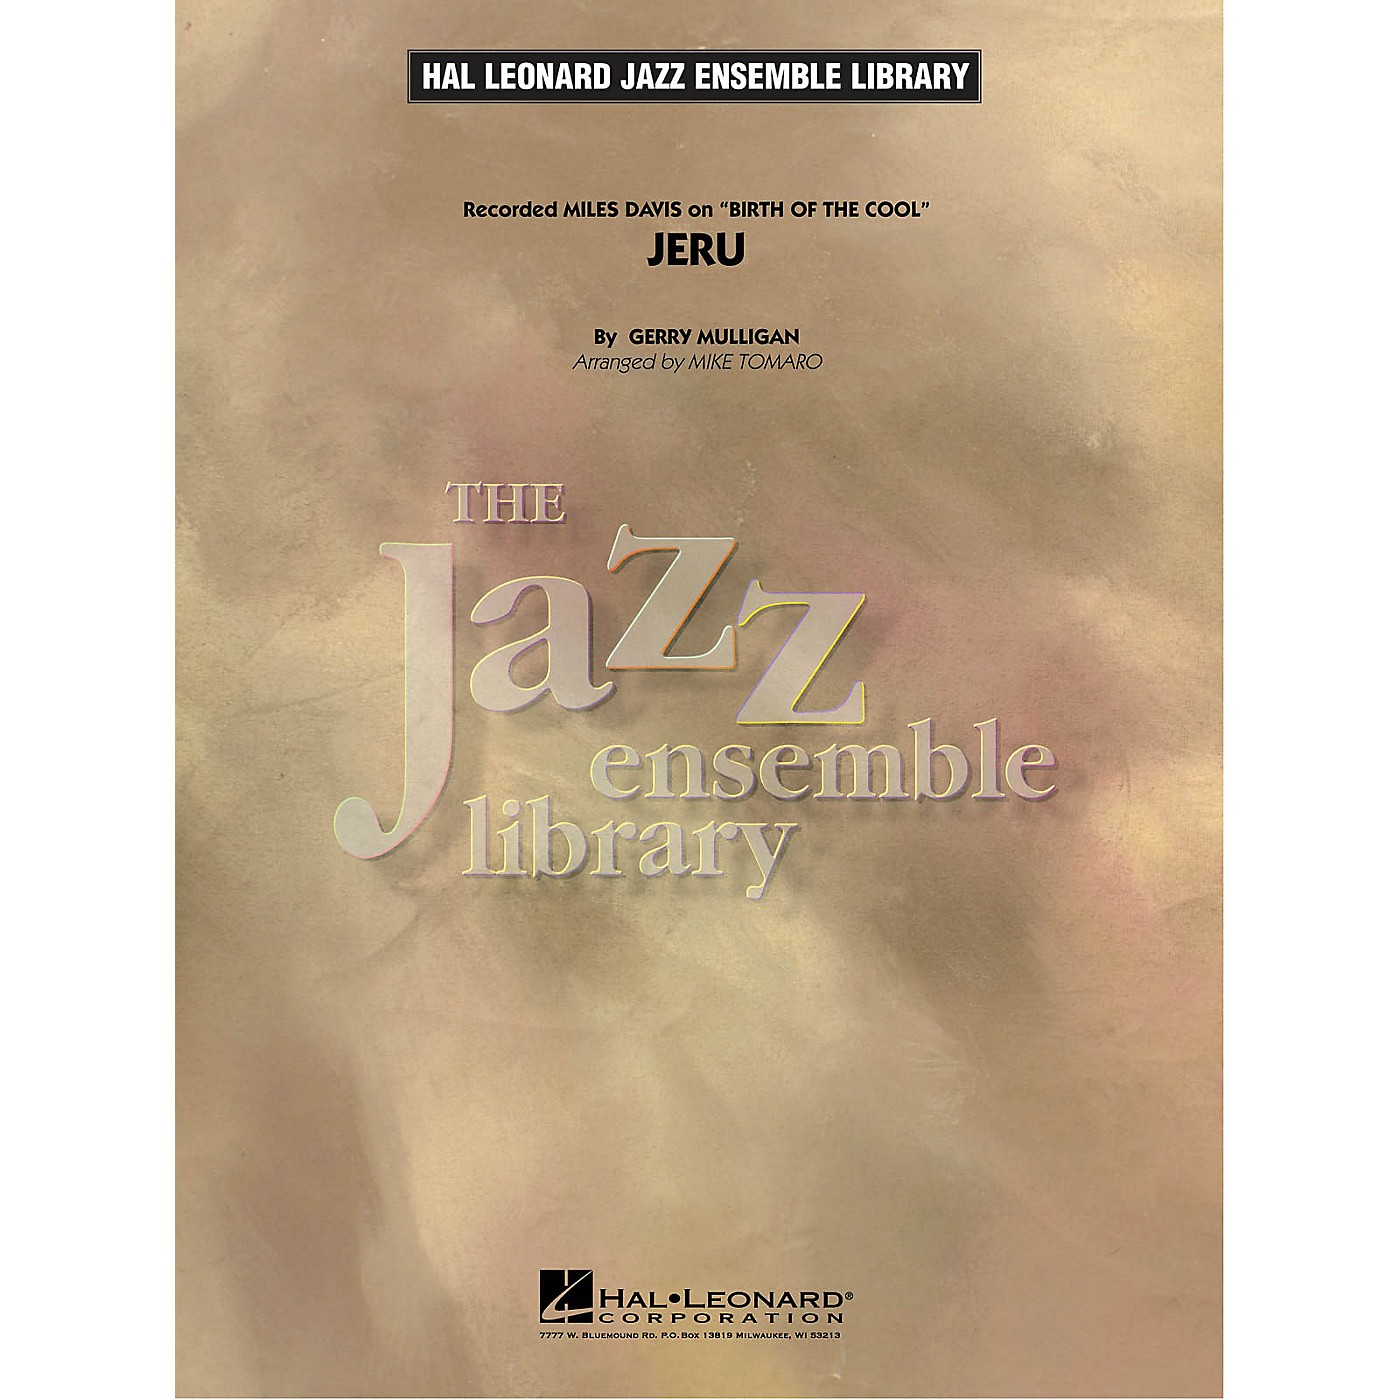 Hal Leonard Jeru (from Birth of the Cool) Jazz Band Level 4 by Miles Davis Arranged by Mike Tomaro thumbnail